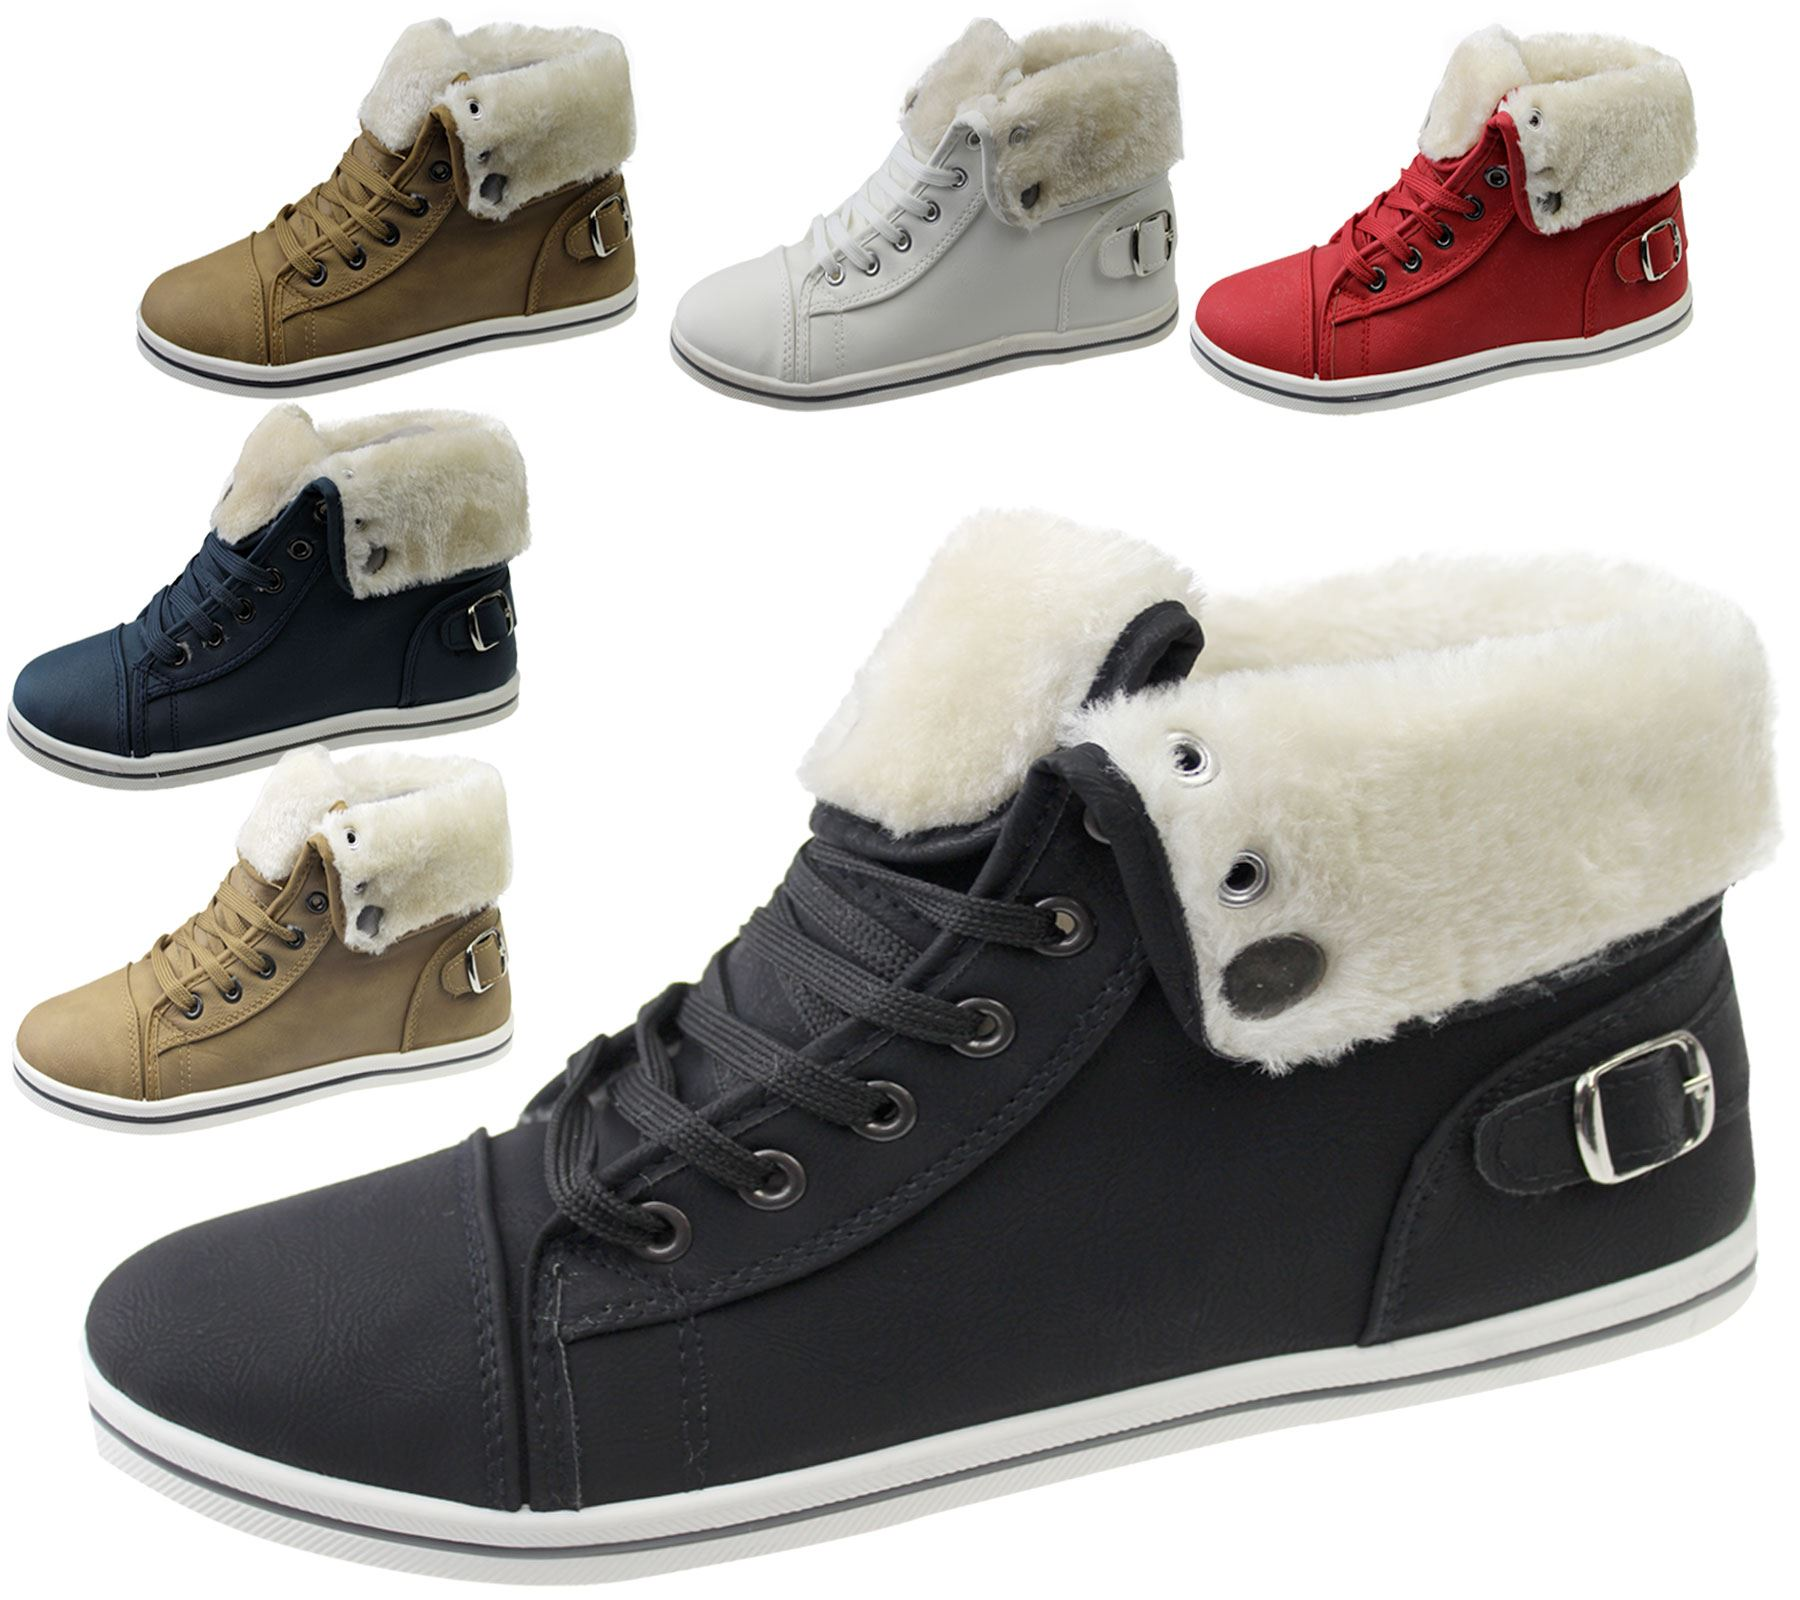 Girls-Boots-Womens-Warm-Lined-High-Top-Ankle-Trainer-Ladies-Winter-Shoes-Size miniatura 84